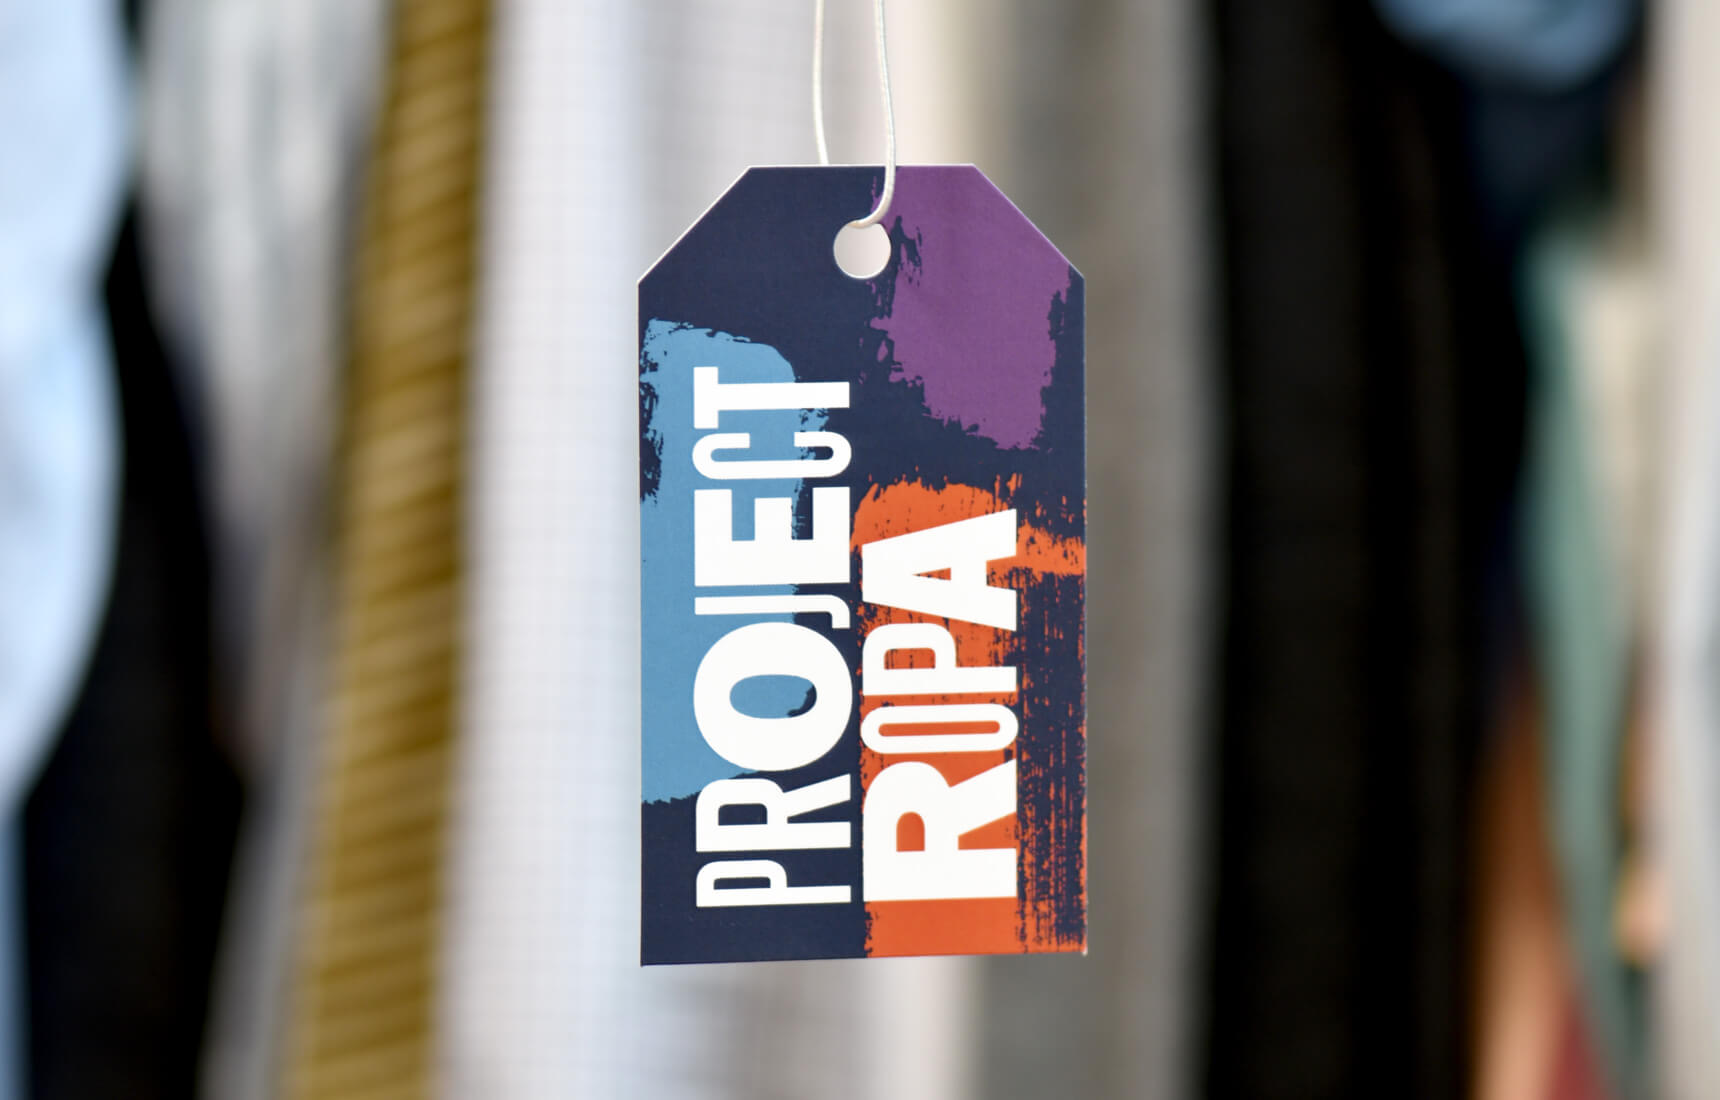 Hangtag design for nonprofit, Project Ropa.